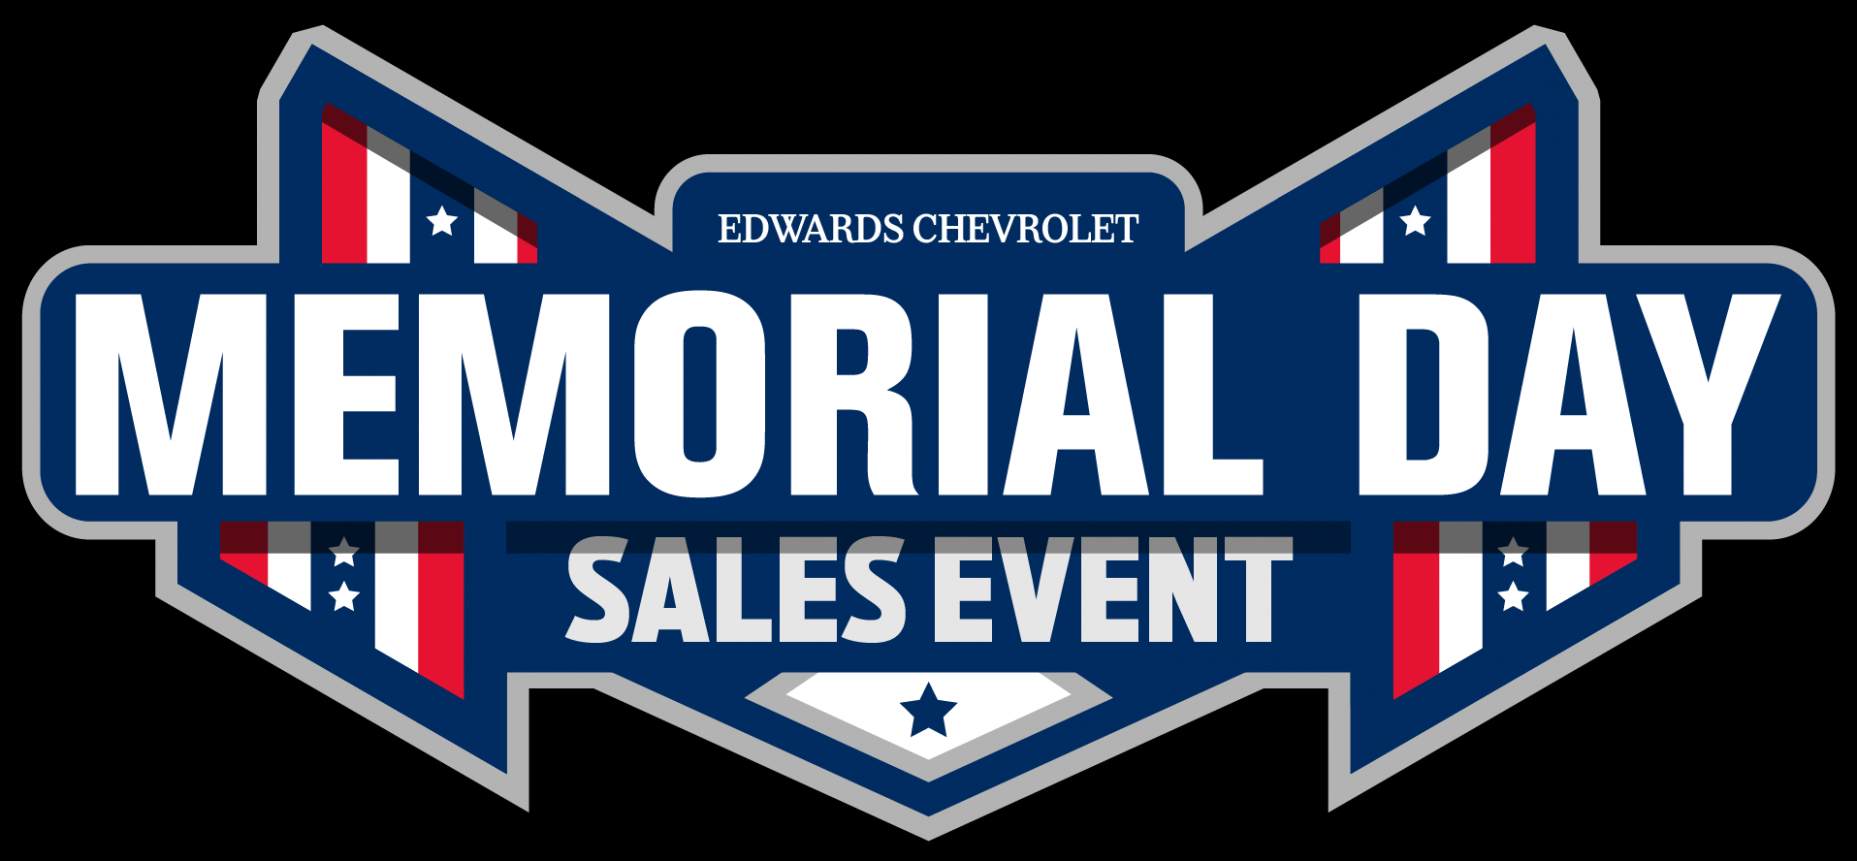 Memorial Day Sales Event | Edwards Chevrolet 10 - chevrolet memorial day sale 2020